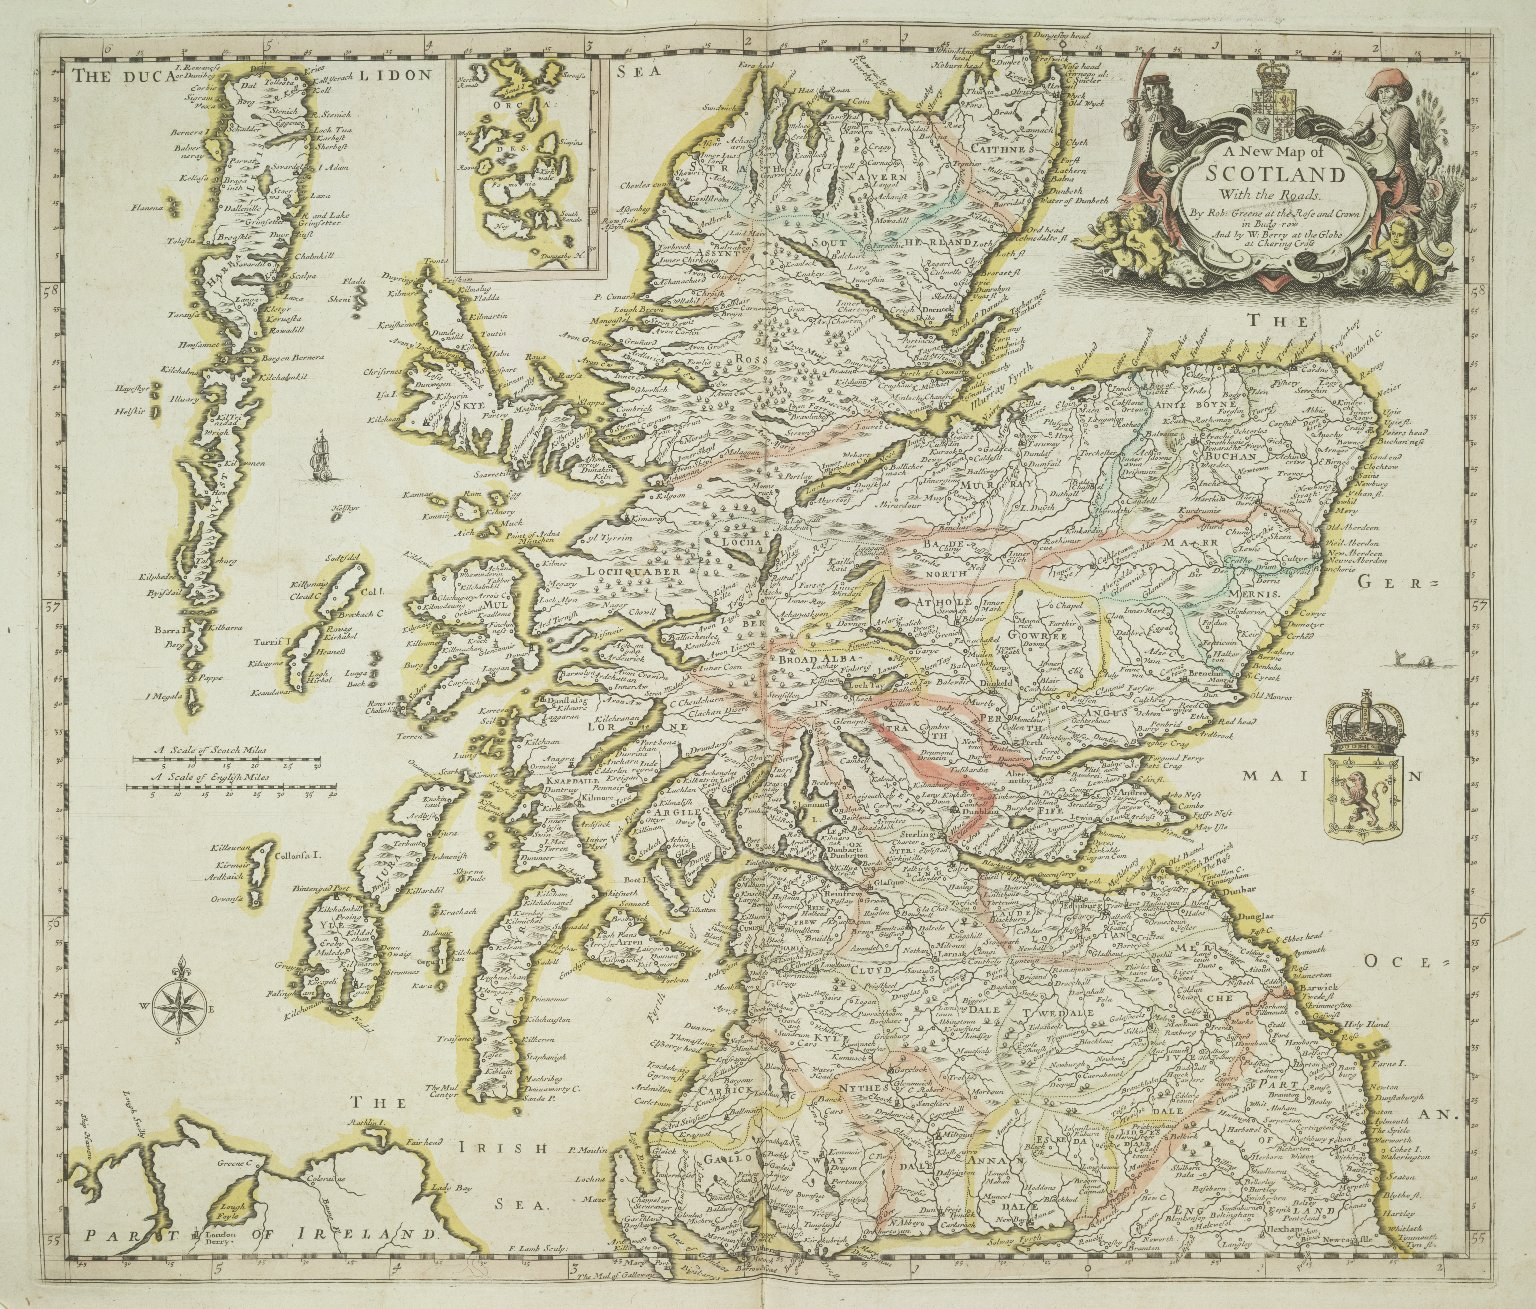 A New Map of SCOTLAND With the Roads. [1 of 1]